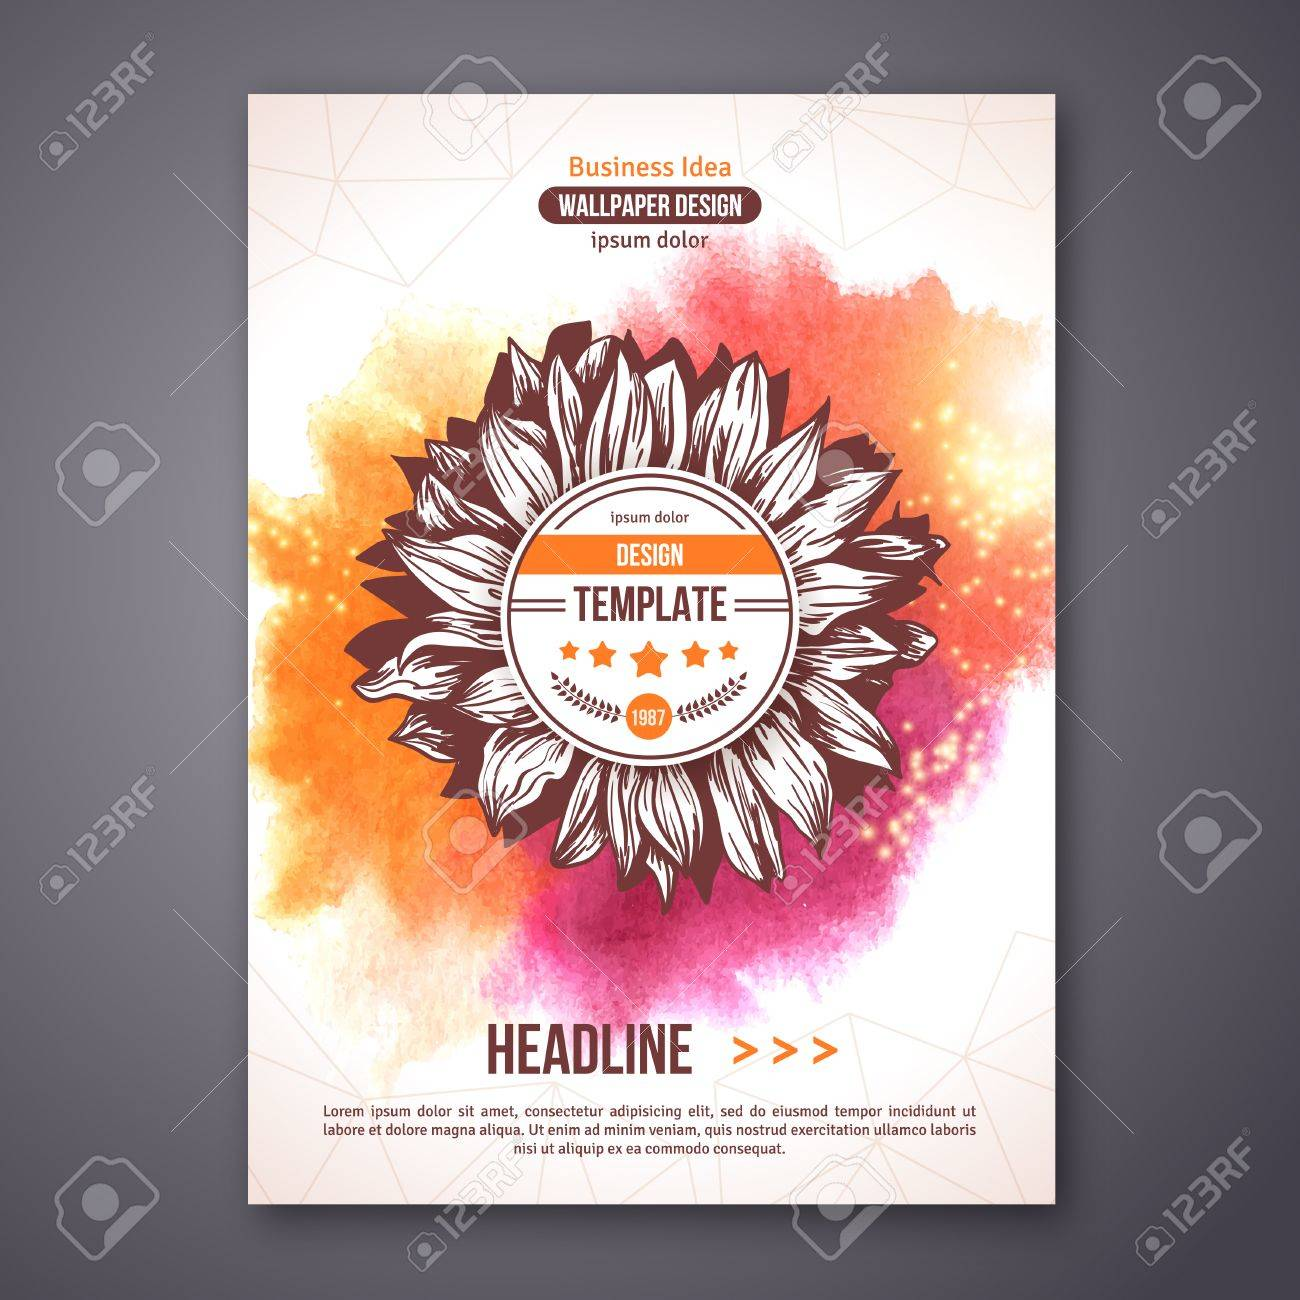 Flyer Ideas Poster Or Flyer Template With Watercolor Paint Abstract Background